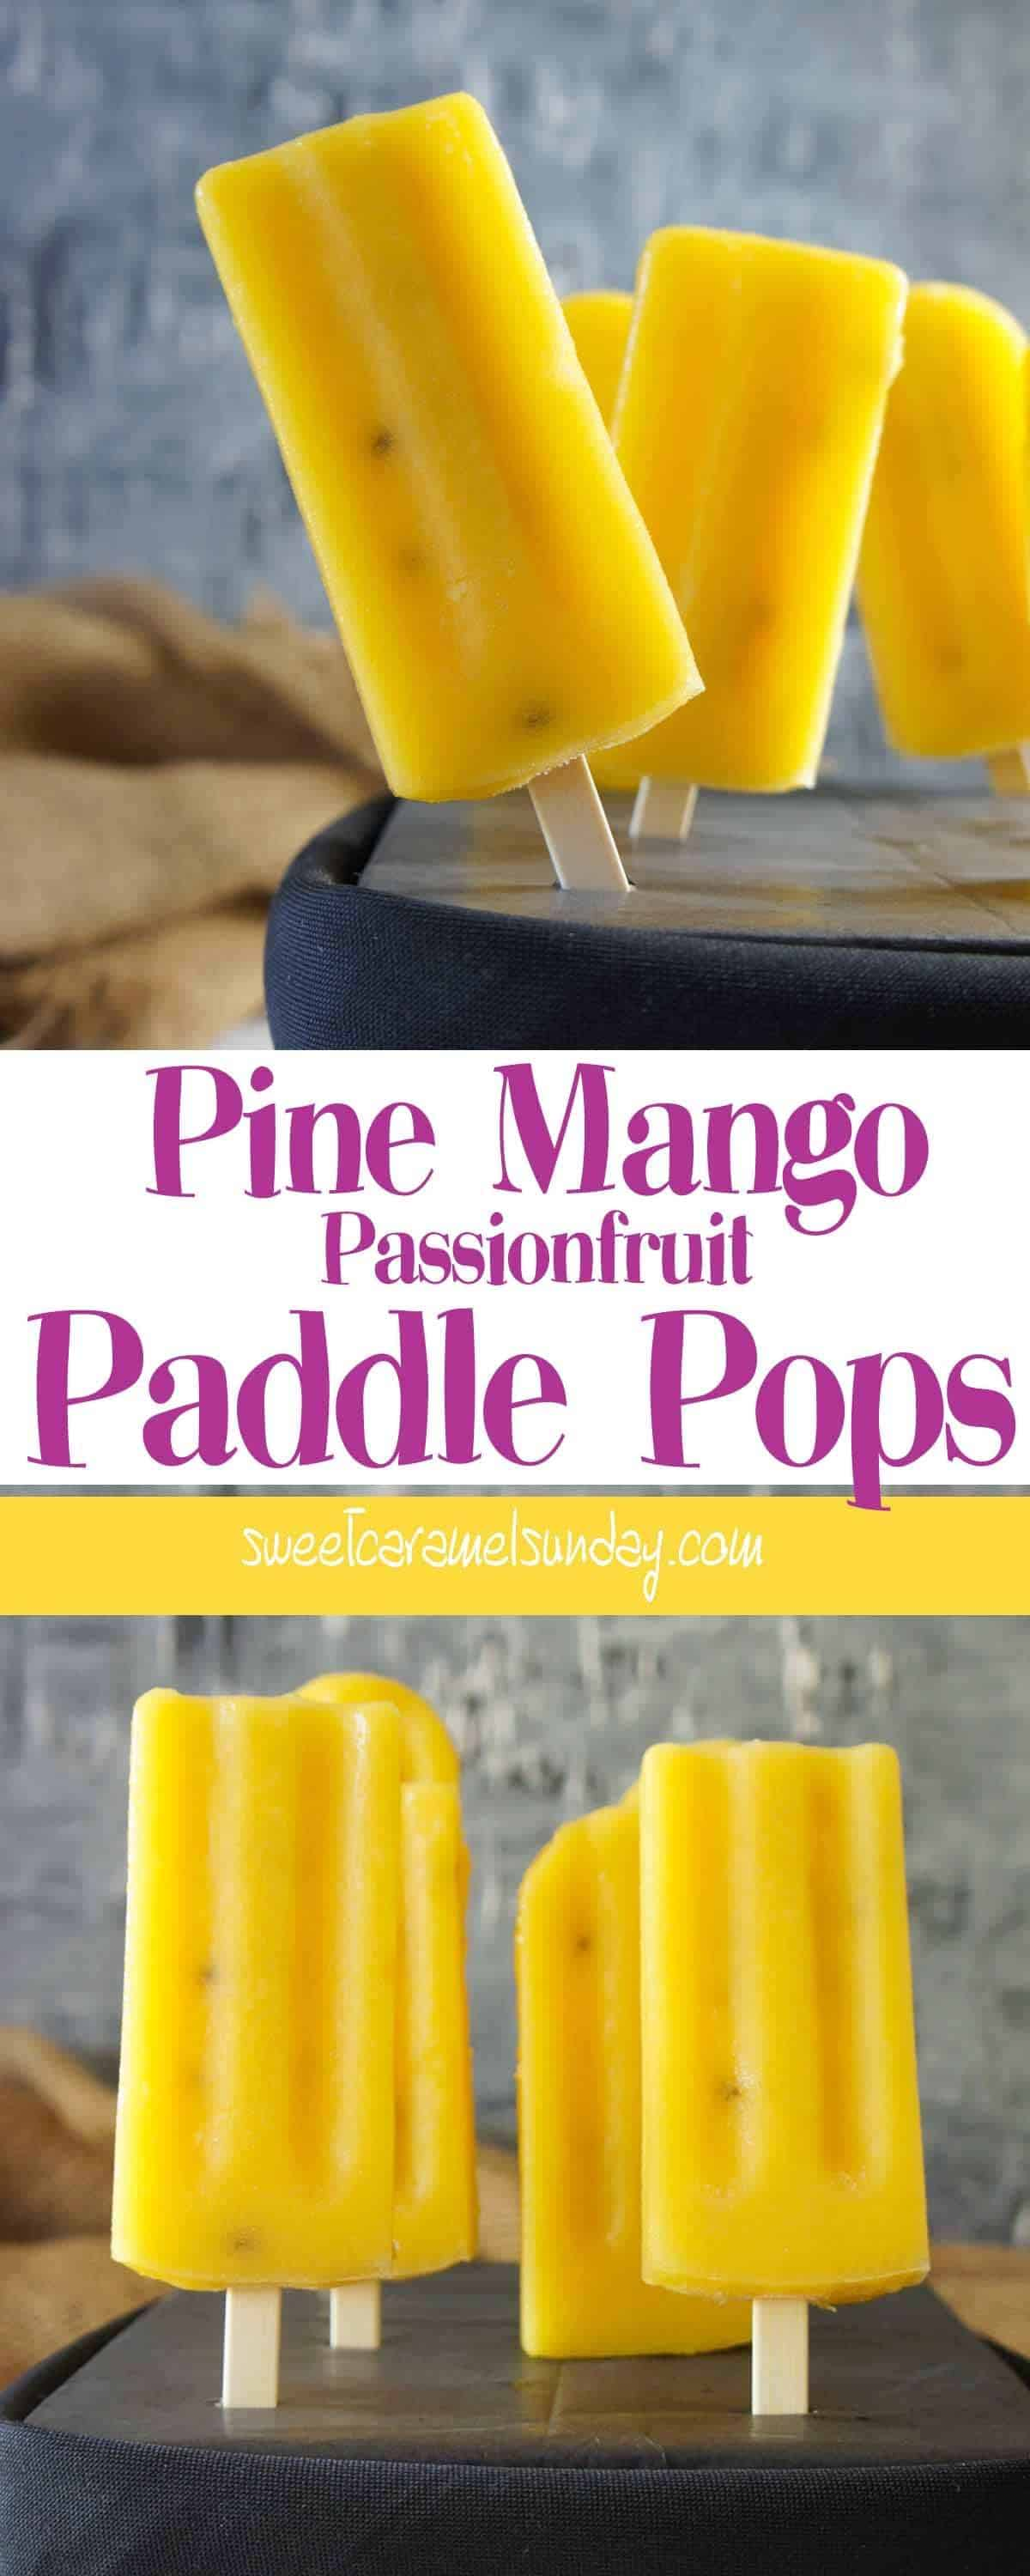 Pine Mango Passionfruit Paddle Pops with text overlay